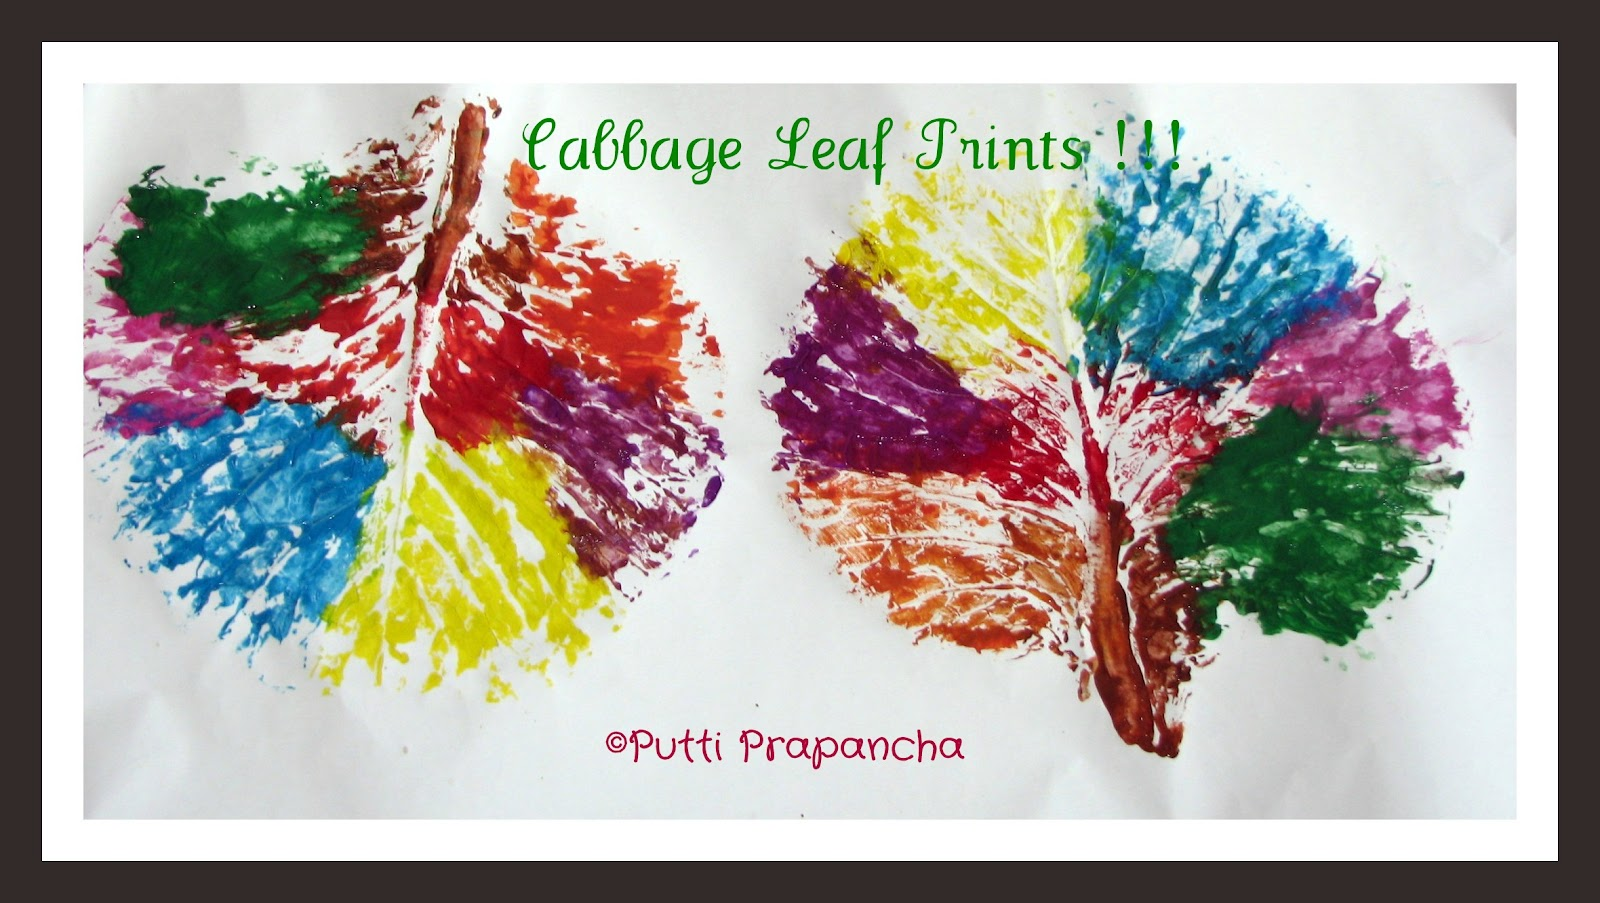 ever since i saw the big leaf printing idea on kleas ive been just dying to try it out with putti but did not find any big leafy plants in our - Printing Pictures For Kids